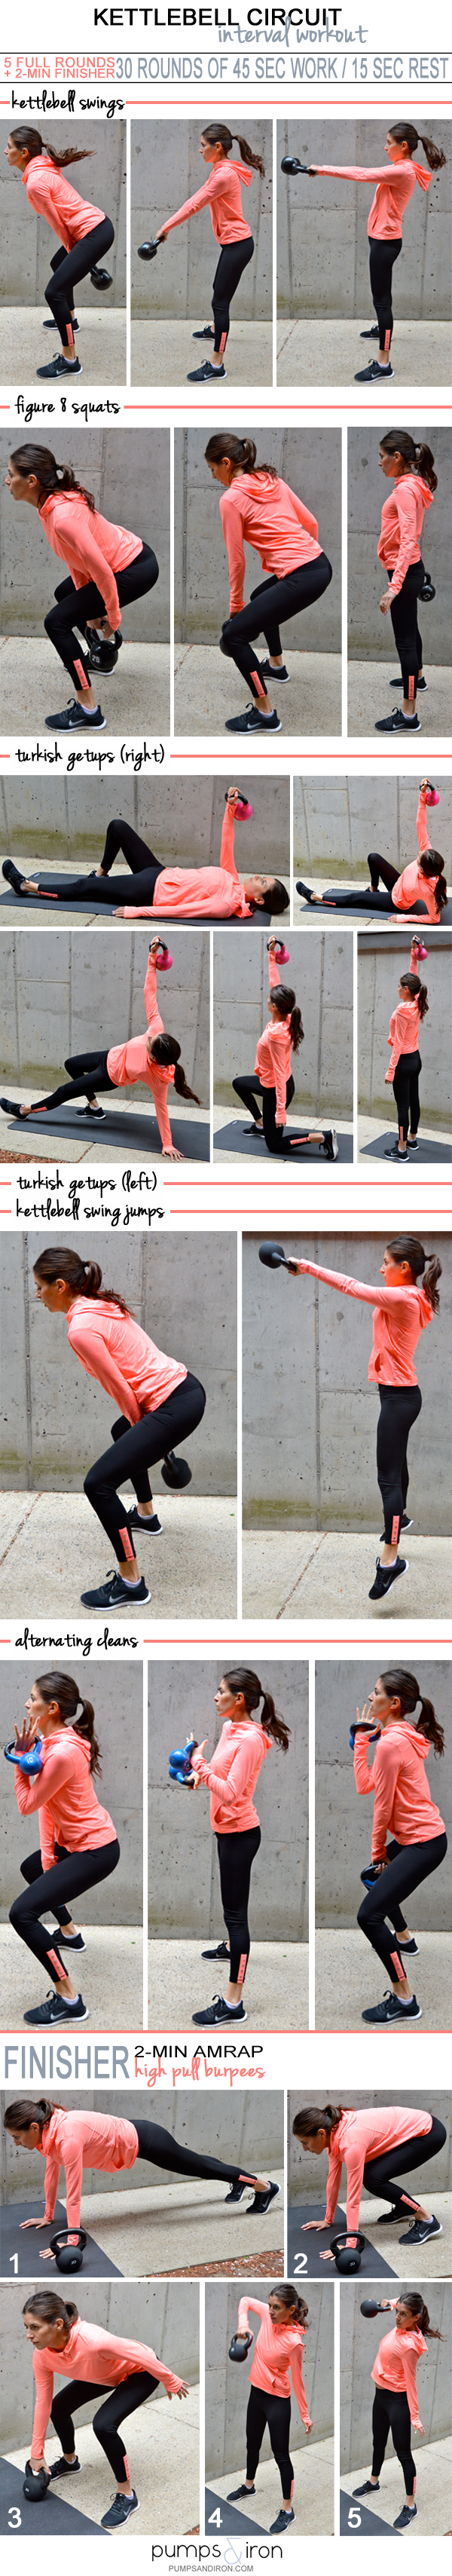 30-Minute Kettlebell HIIT Workout with Finisher